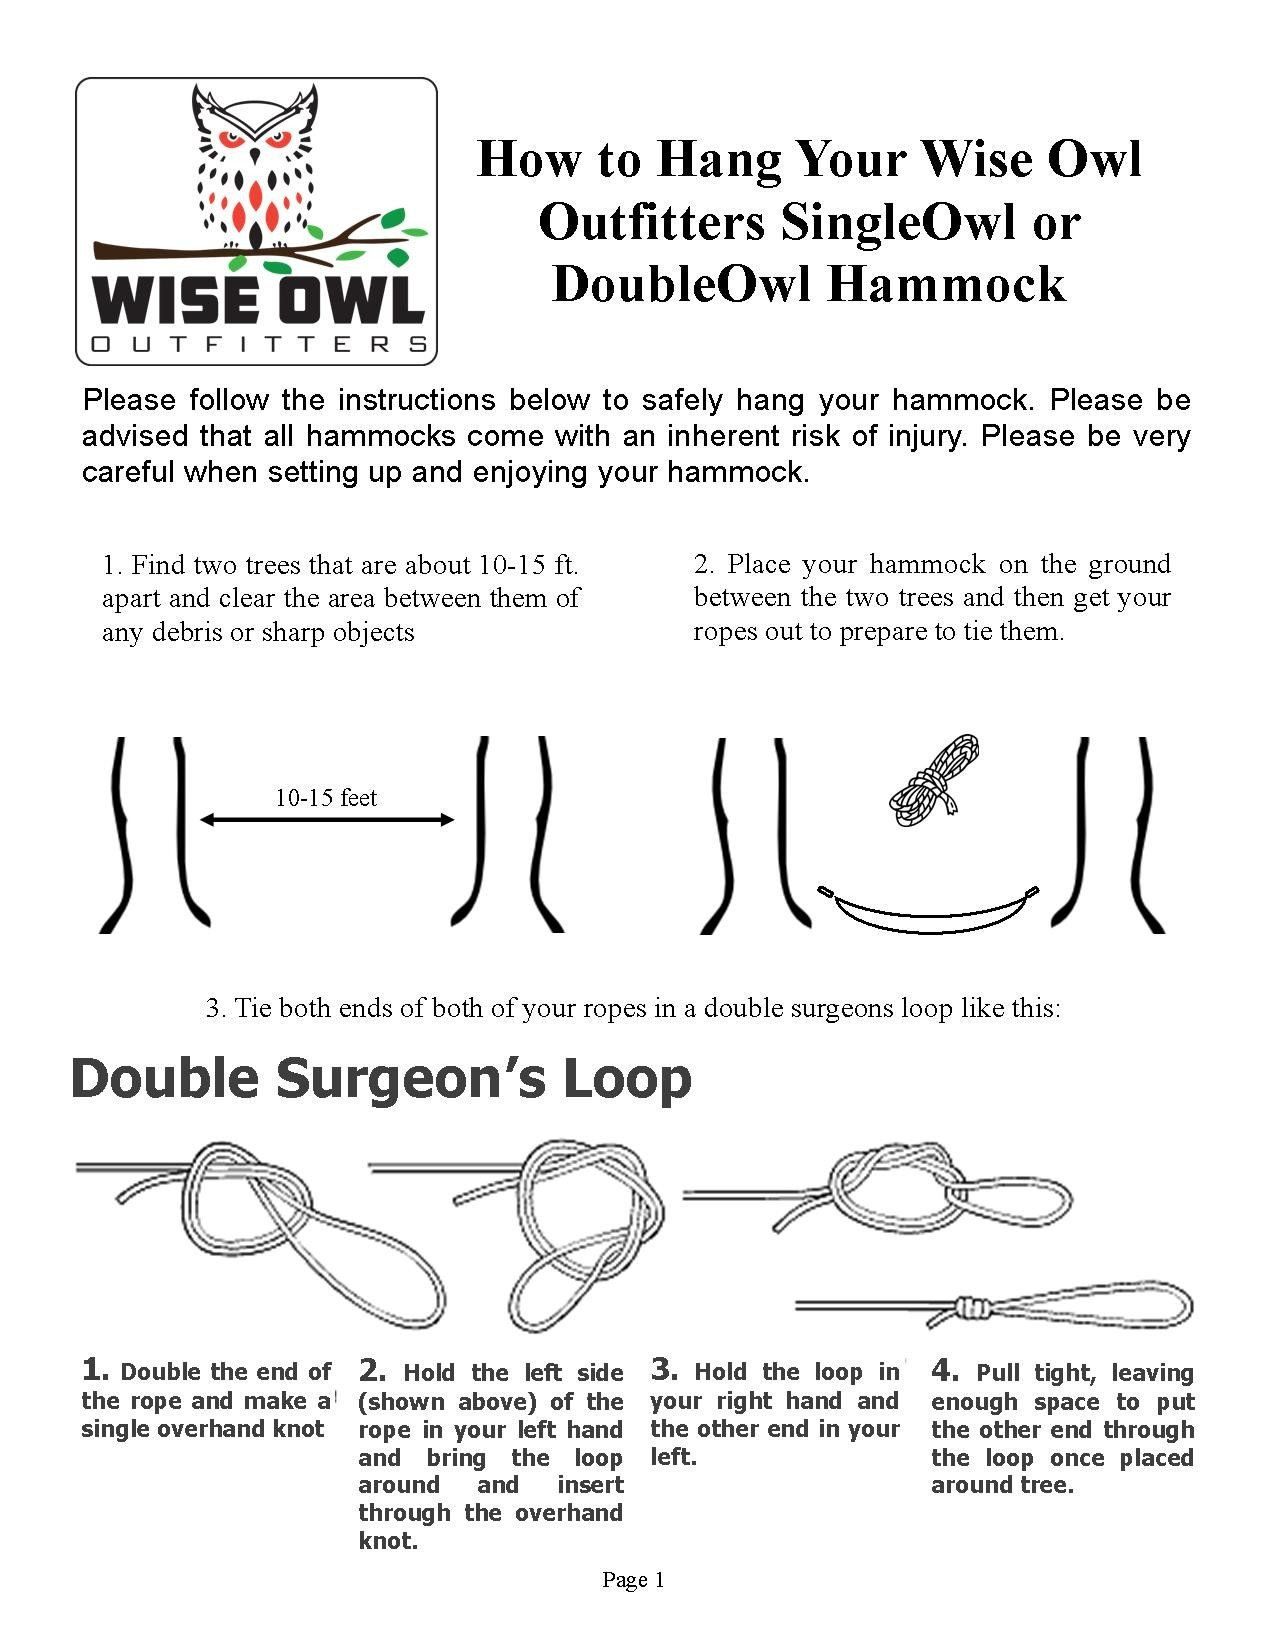 Hammock With Straps Instructions Instruction Hammock Wise Owl